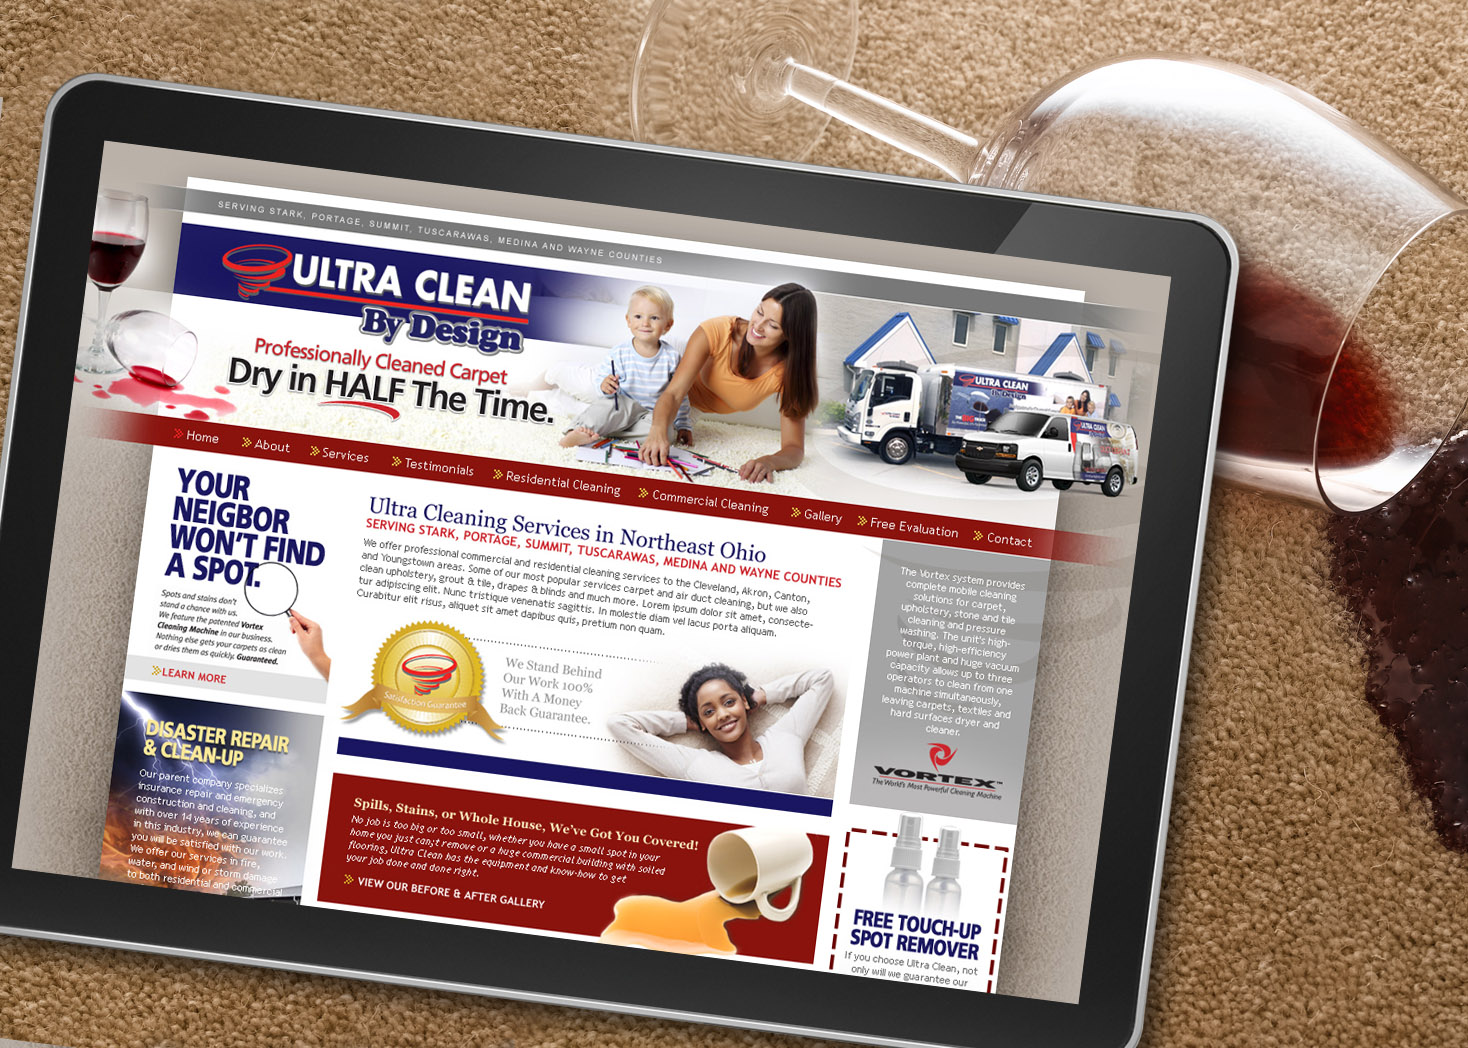 Ultra Clean By Design - Website Design - Les Lehman Design